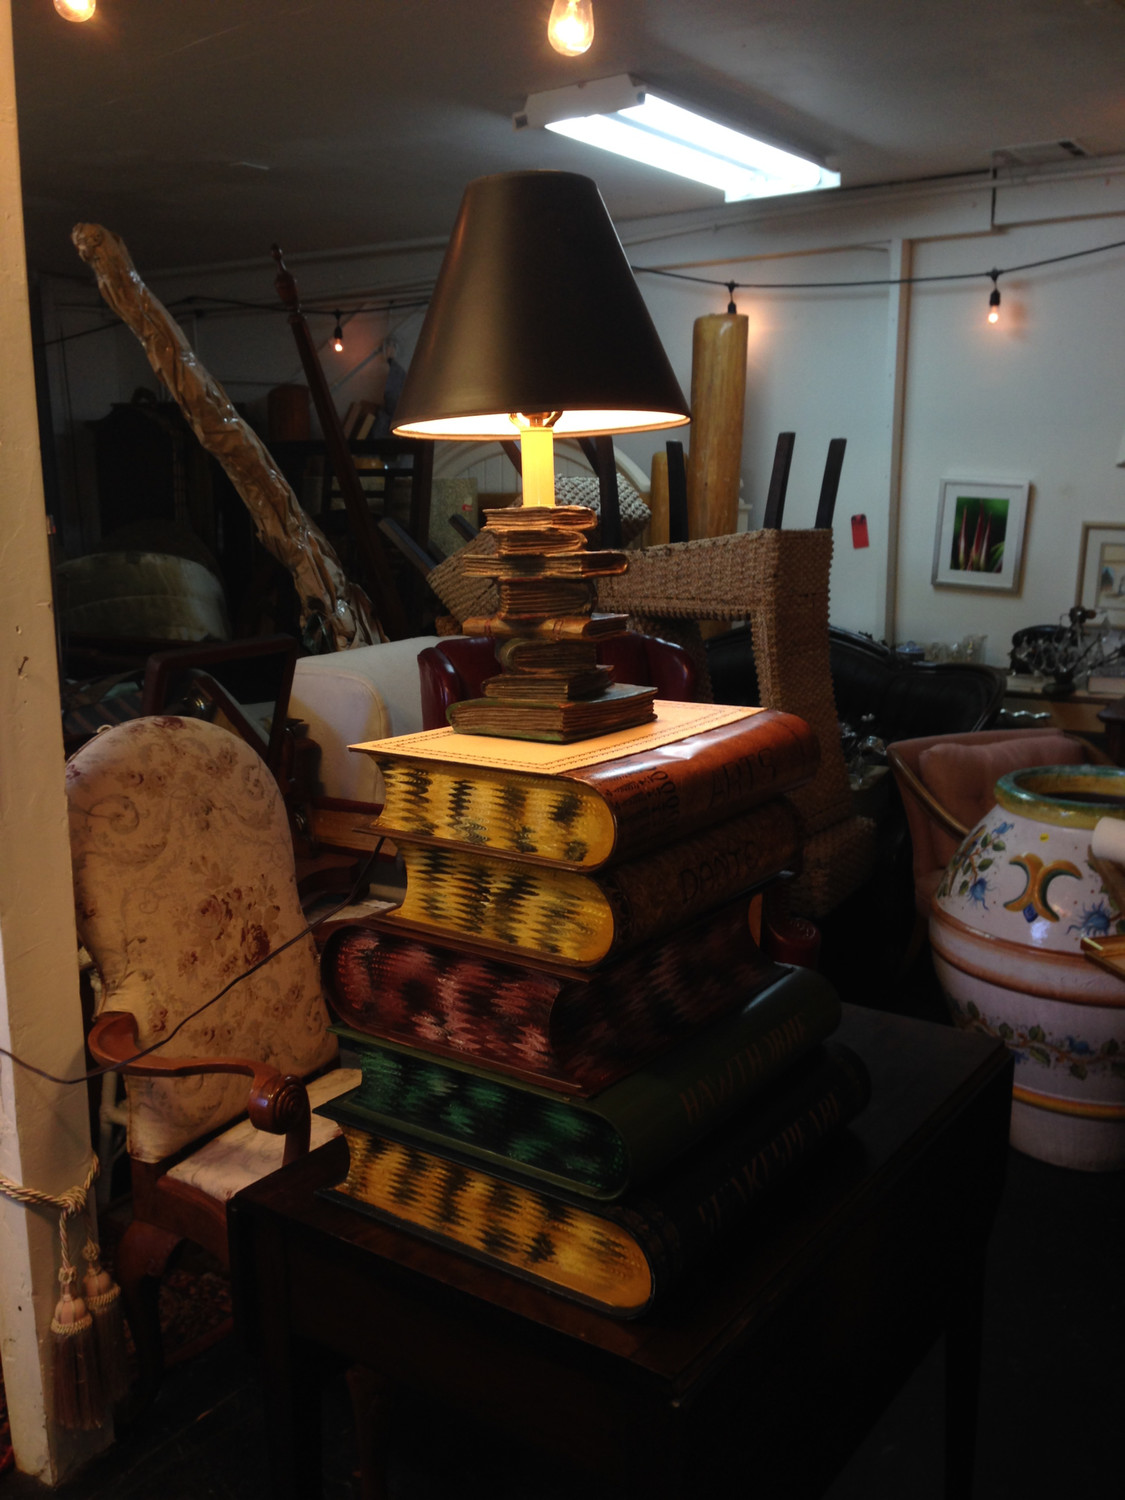 Stacking Faux-Book Table and Lamp by Gump's